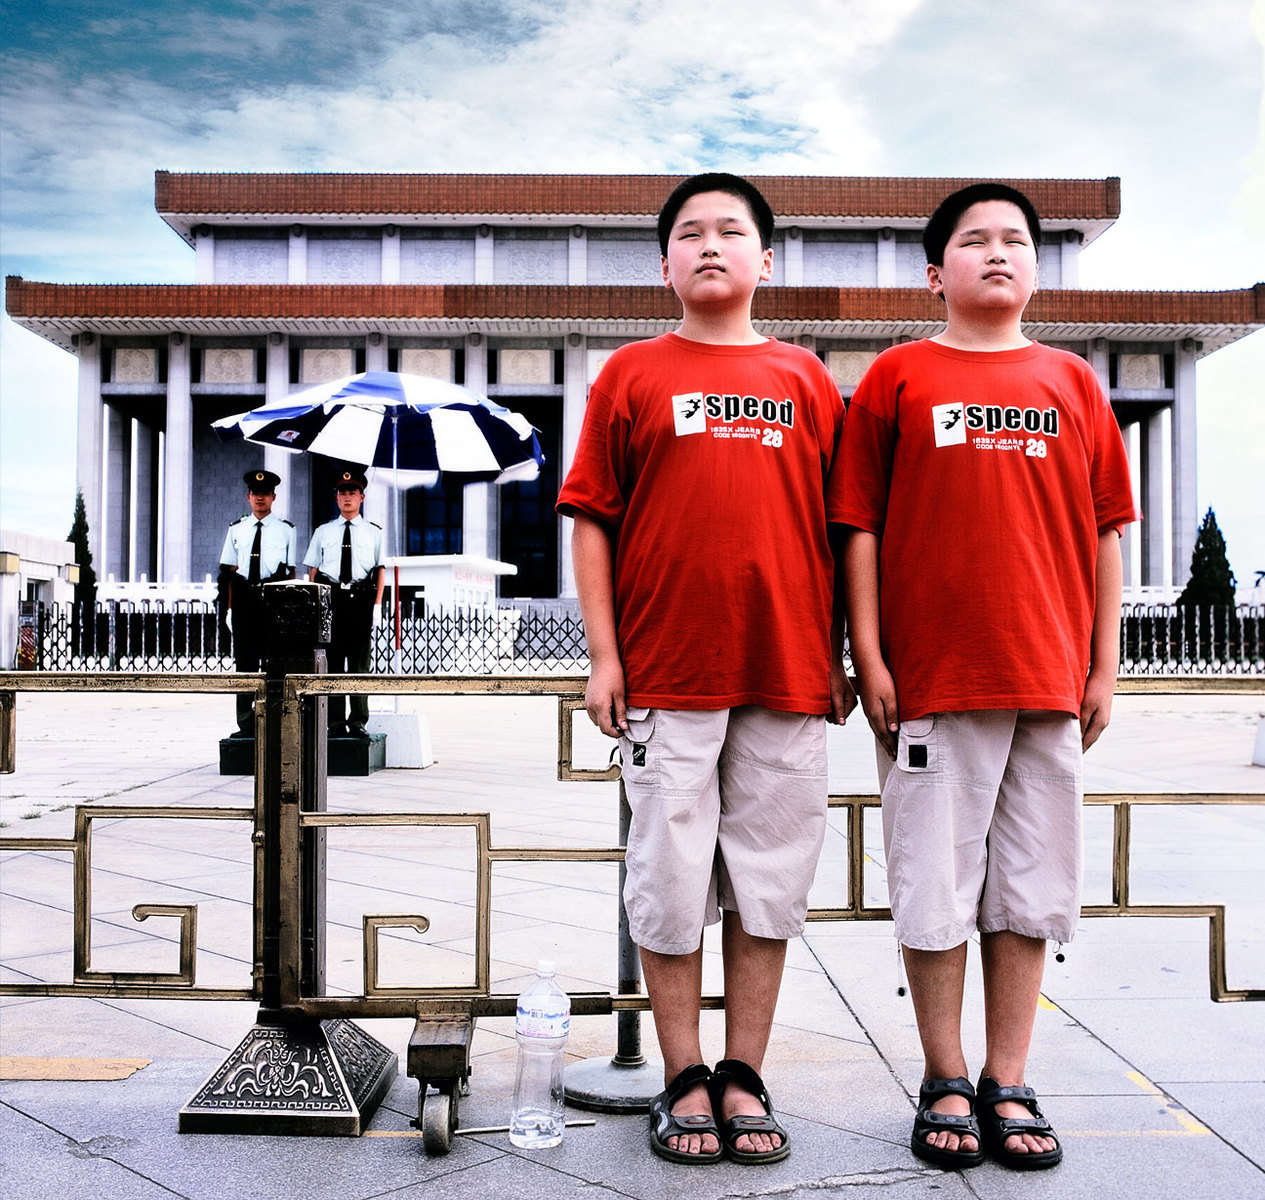 Contemporary China Tiananmen Square  : On The Road : NY - Portrait Photographer Video, Architectural, Corporate Editorial Location Photography